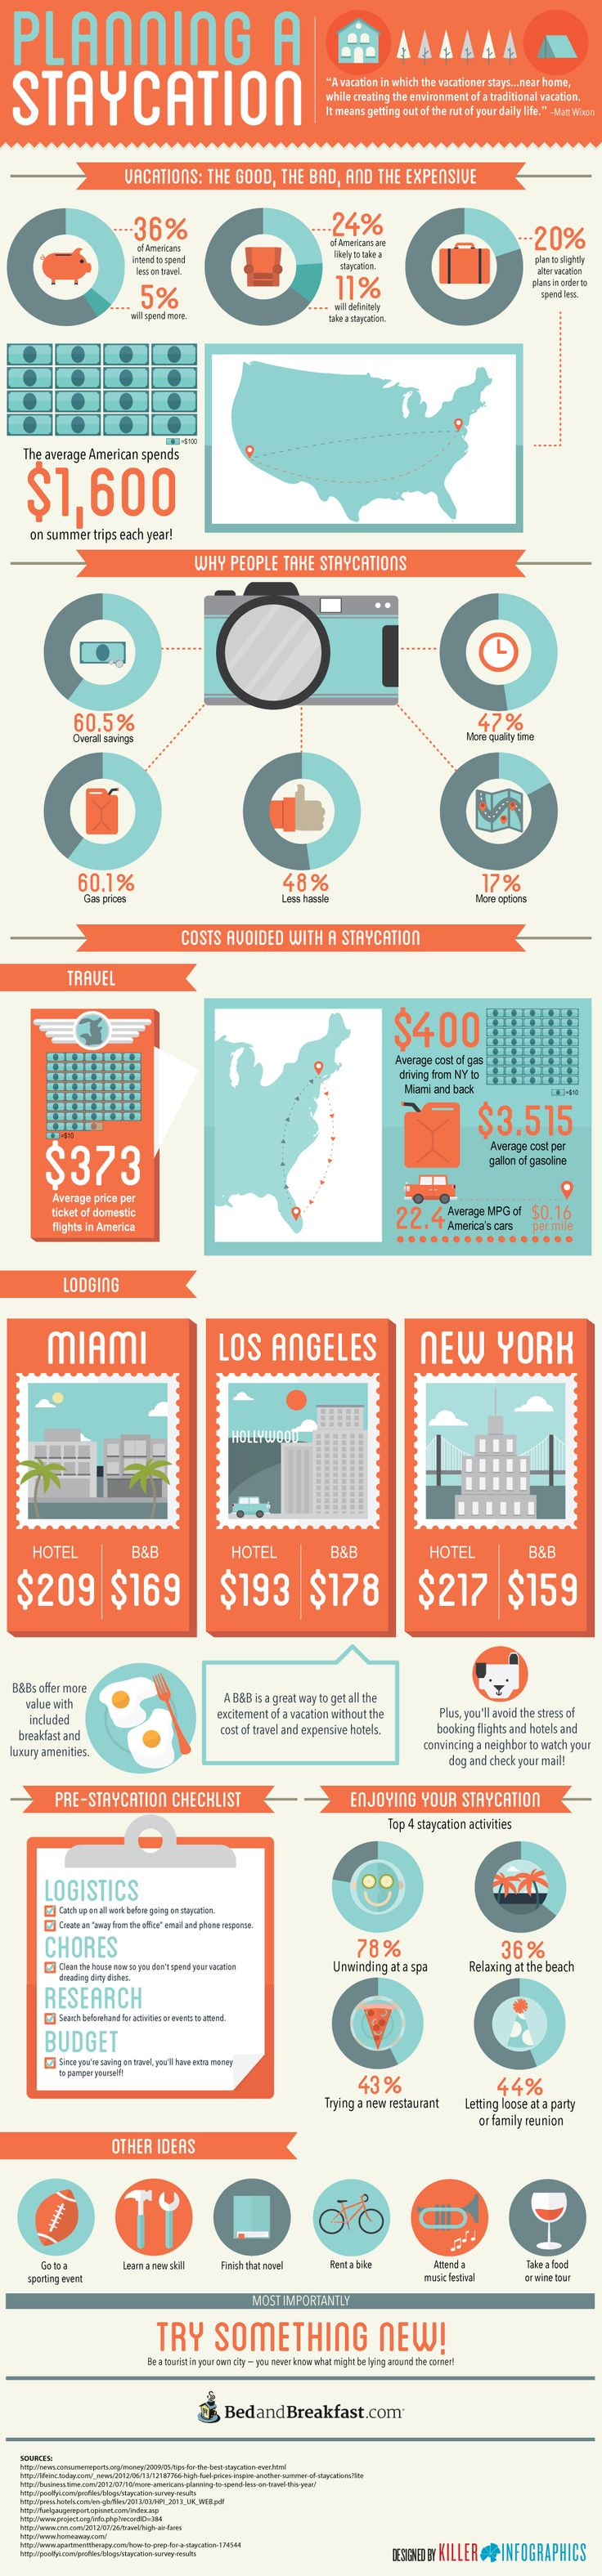 Infographic Planning a Staycation » Killer Infographics